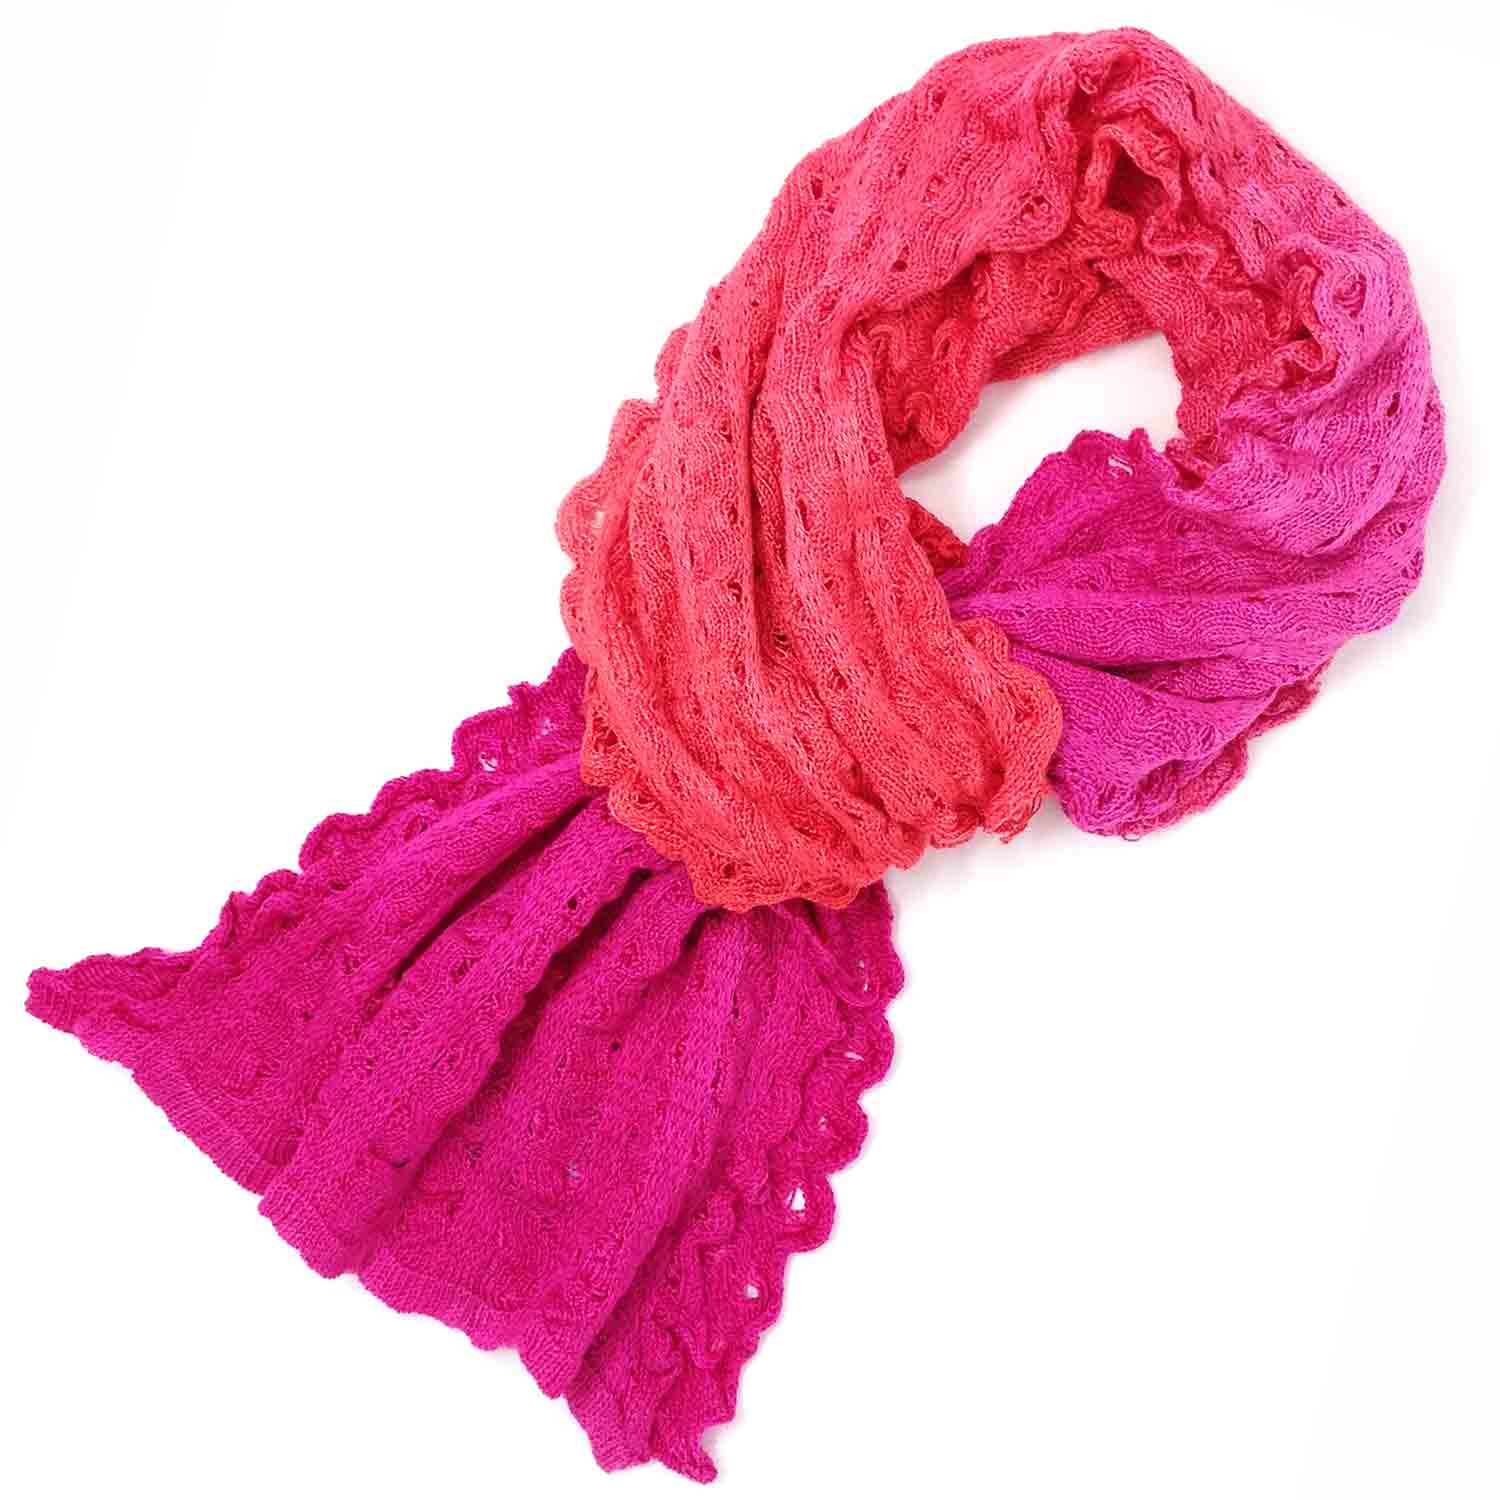 Hand painted silk ripple scarf in scarlet and magenta from Susan Holton Knitwear